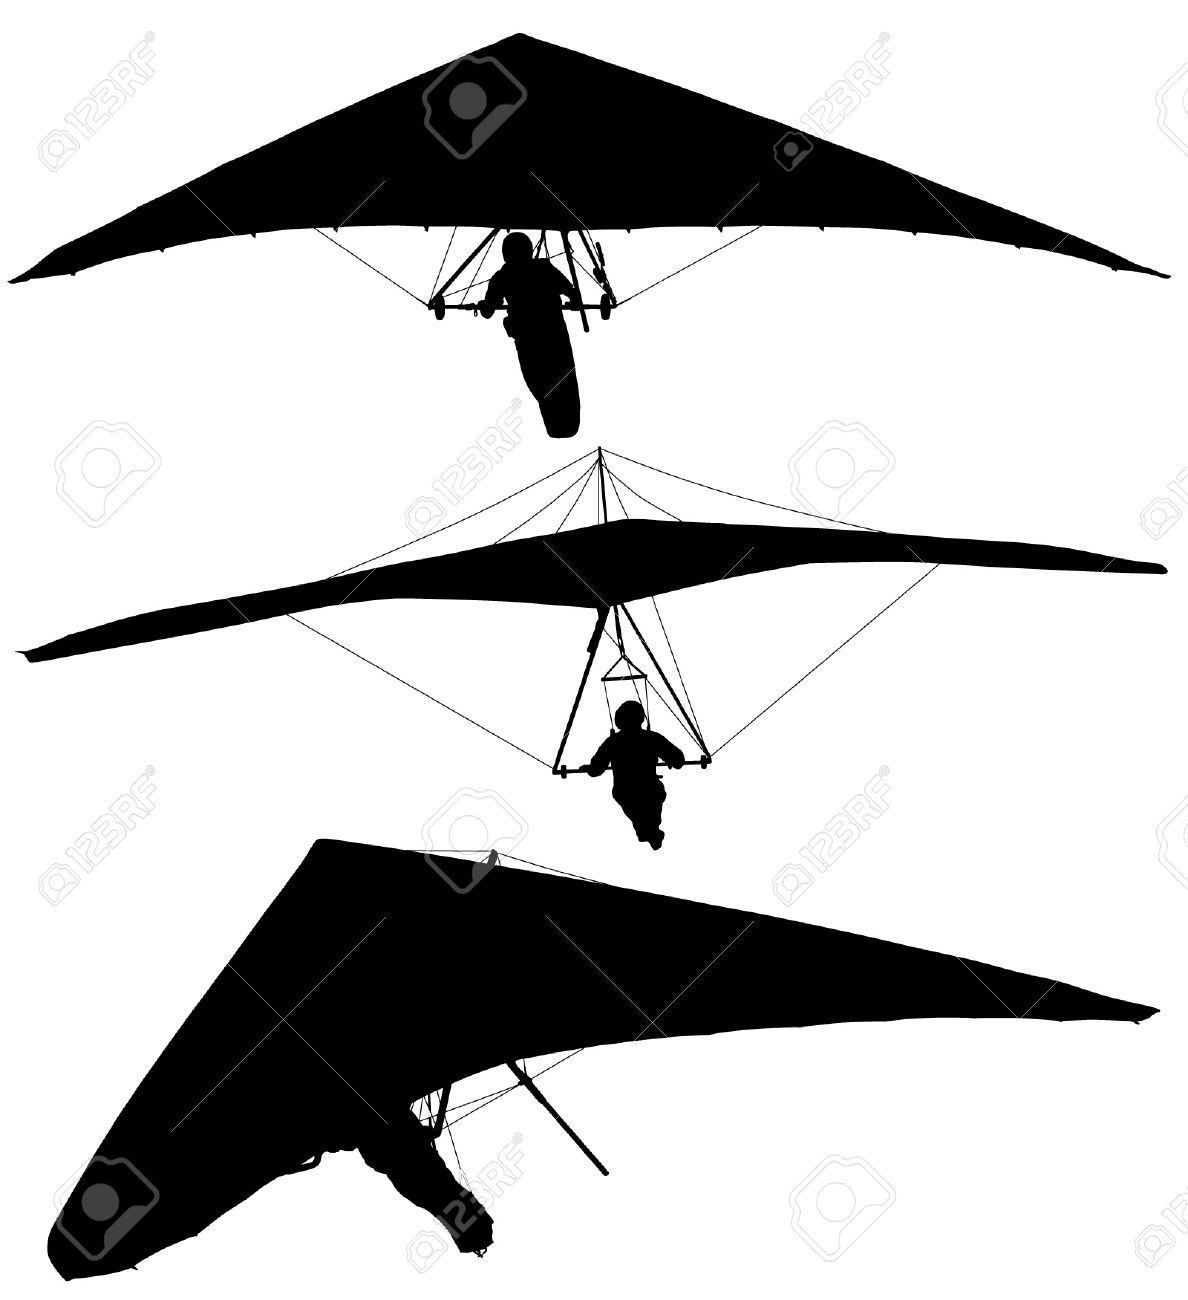 Paraglider silhouette clipart.